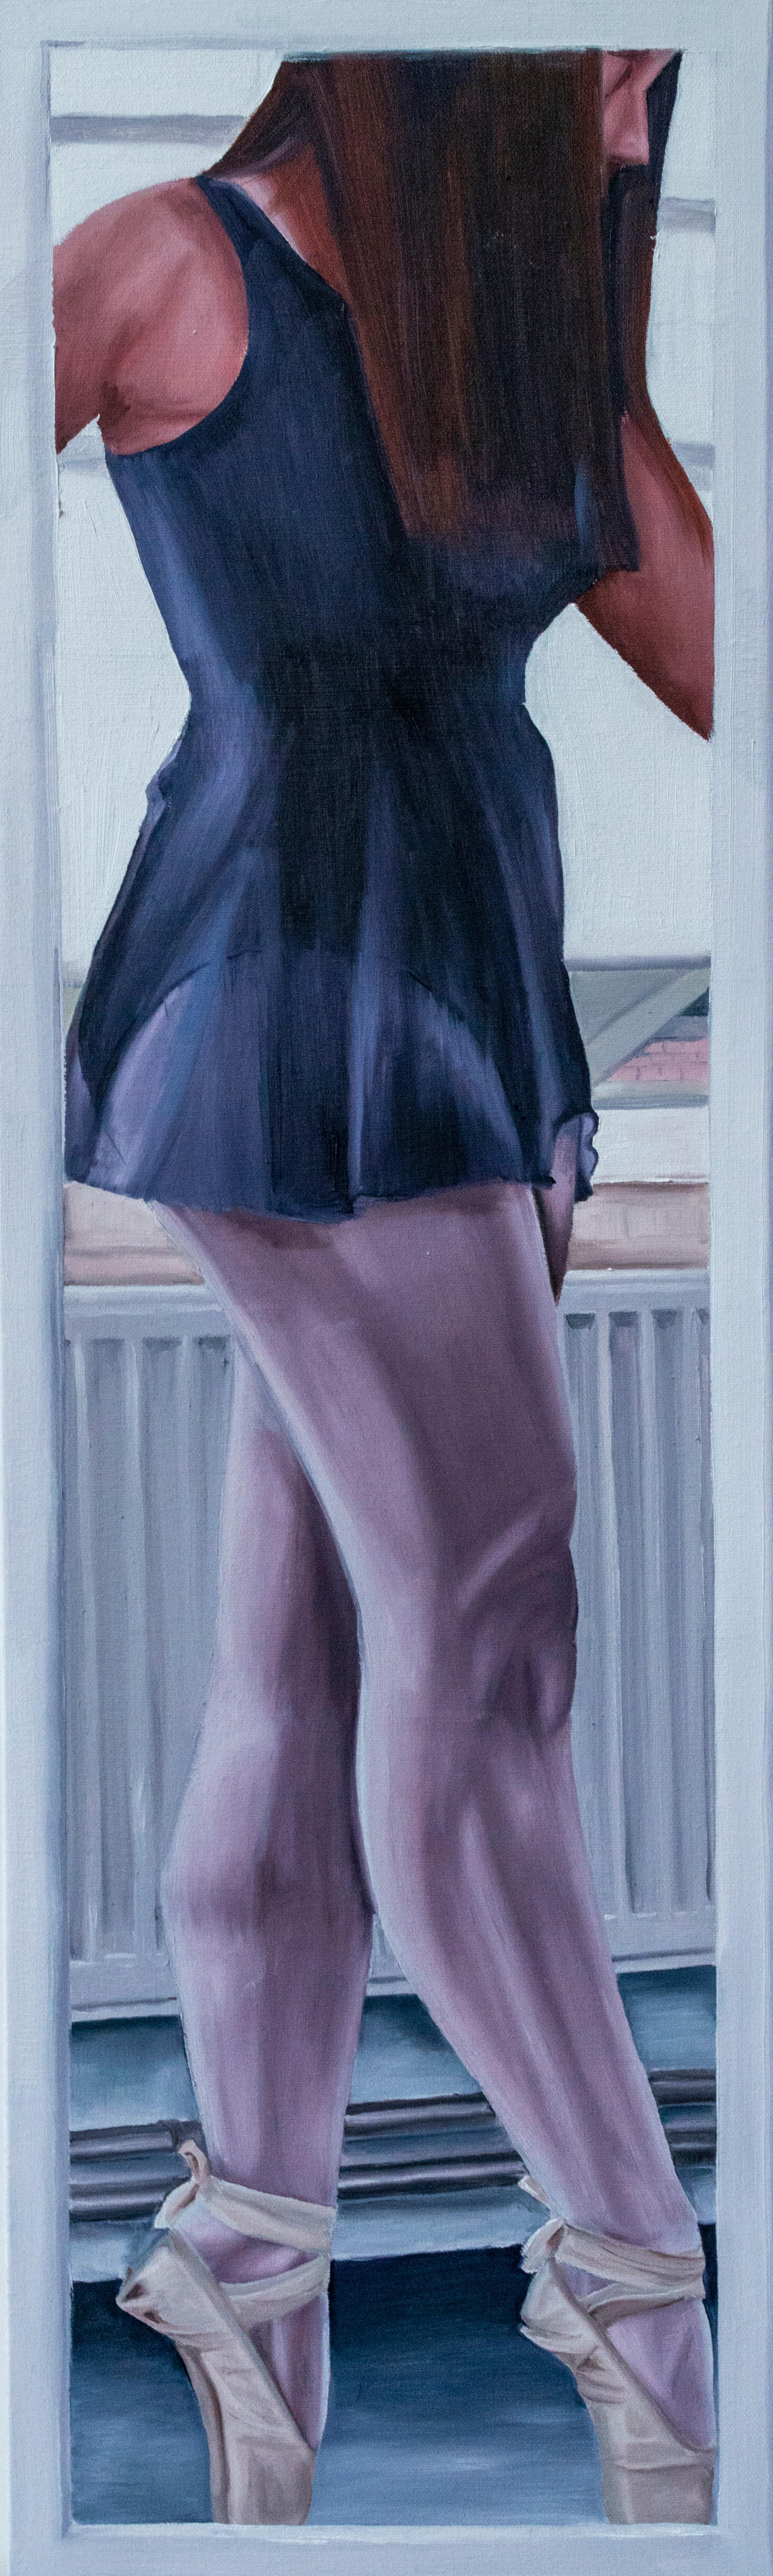 reflection of on-pointe, oil on canvas